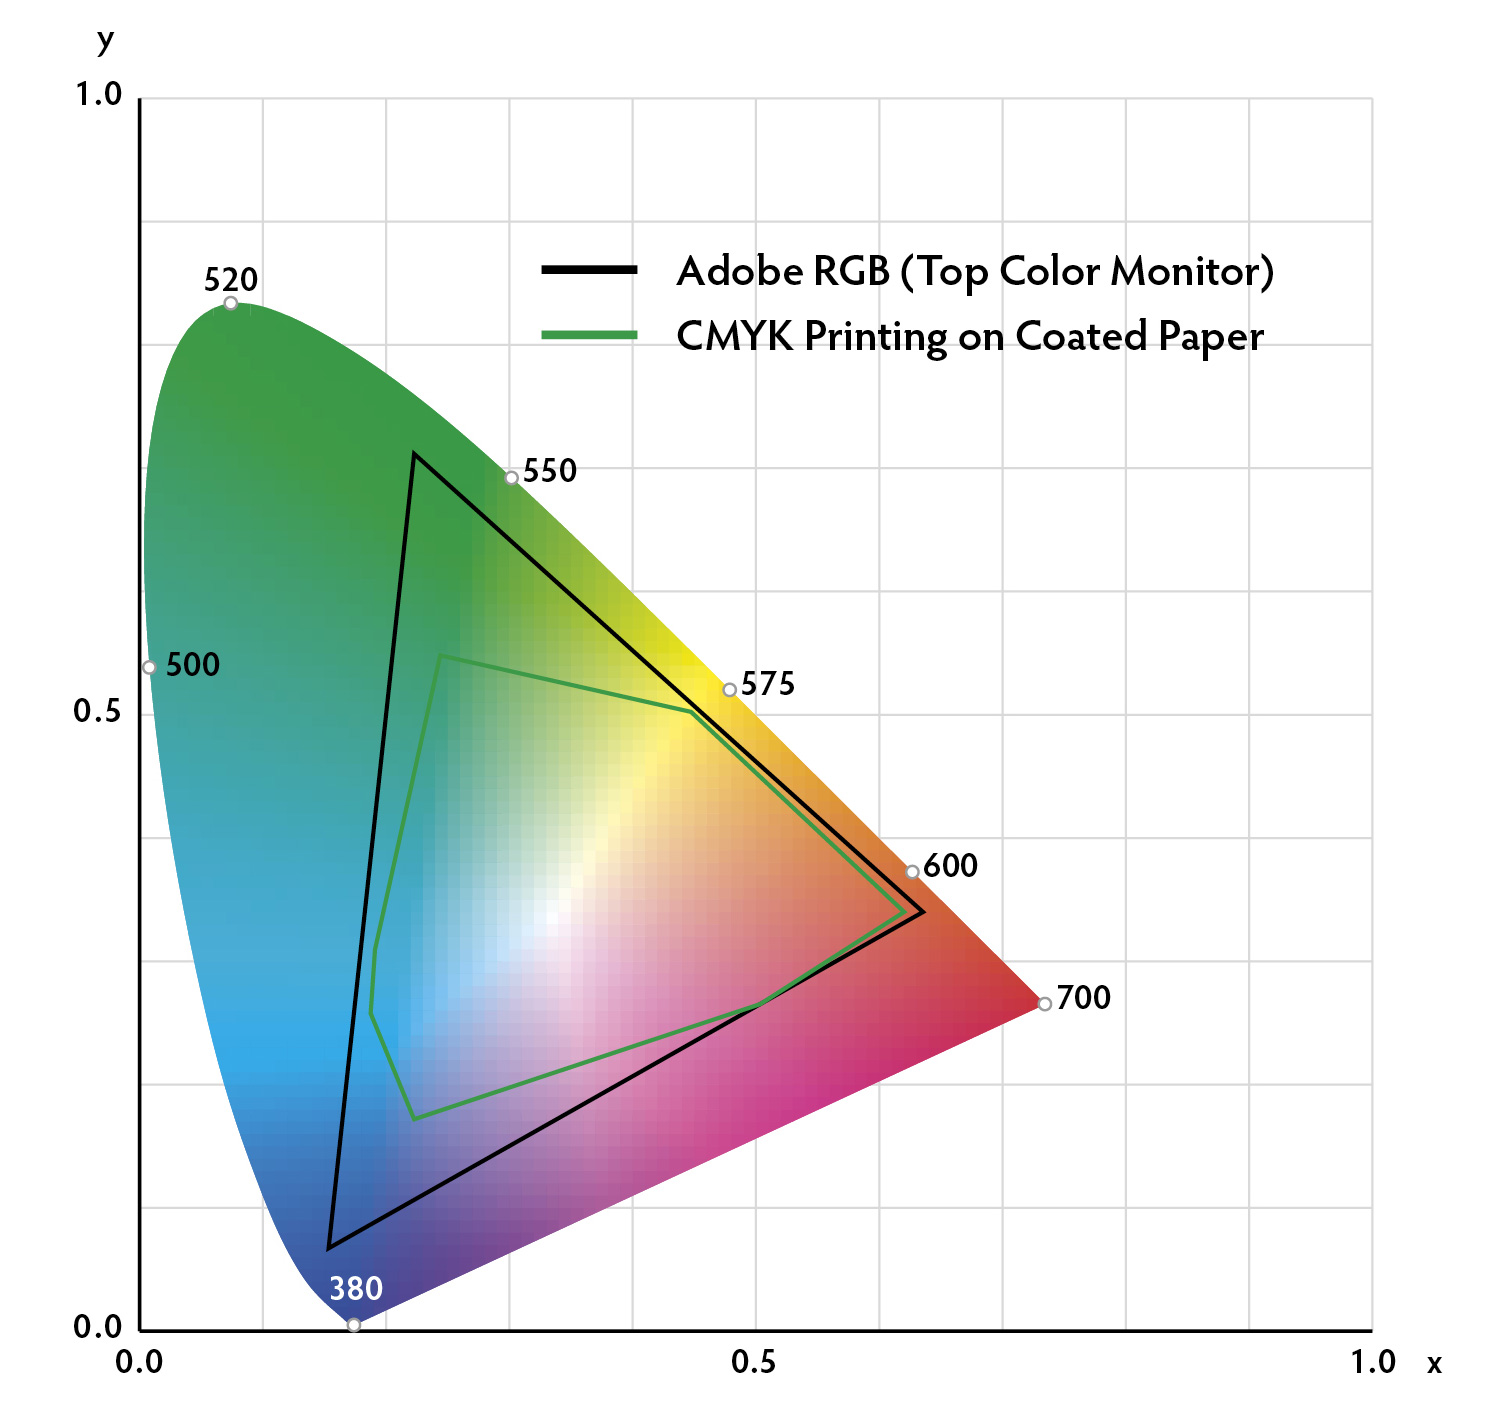 "The CIE (International Commission on Illumination, a.k.a. Commission International de l'Éclairage) chromaticity diagram is used to specify the exact position of all colors visible to the human eye. Note that a computer monitor (represented by Adobe RGB) can display only the colors inside the black line. The colors that can be printed using the standard CMYK printing process is even further restricted to those colors inside the green line. Many rubies and sapphires feature colors outside of both of these ""gamuts."" Thus judgment must be made by personal examination, rather than via printed photos or digital images."